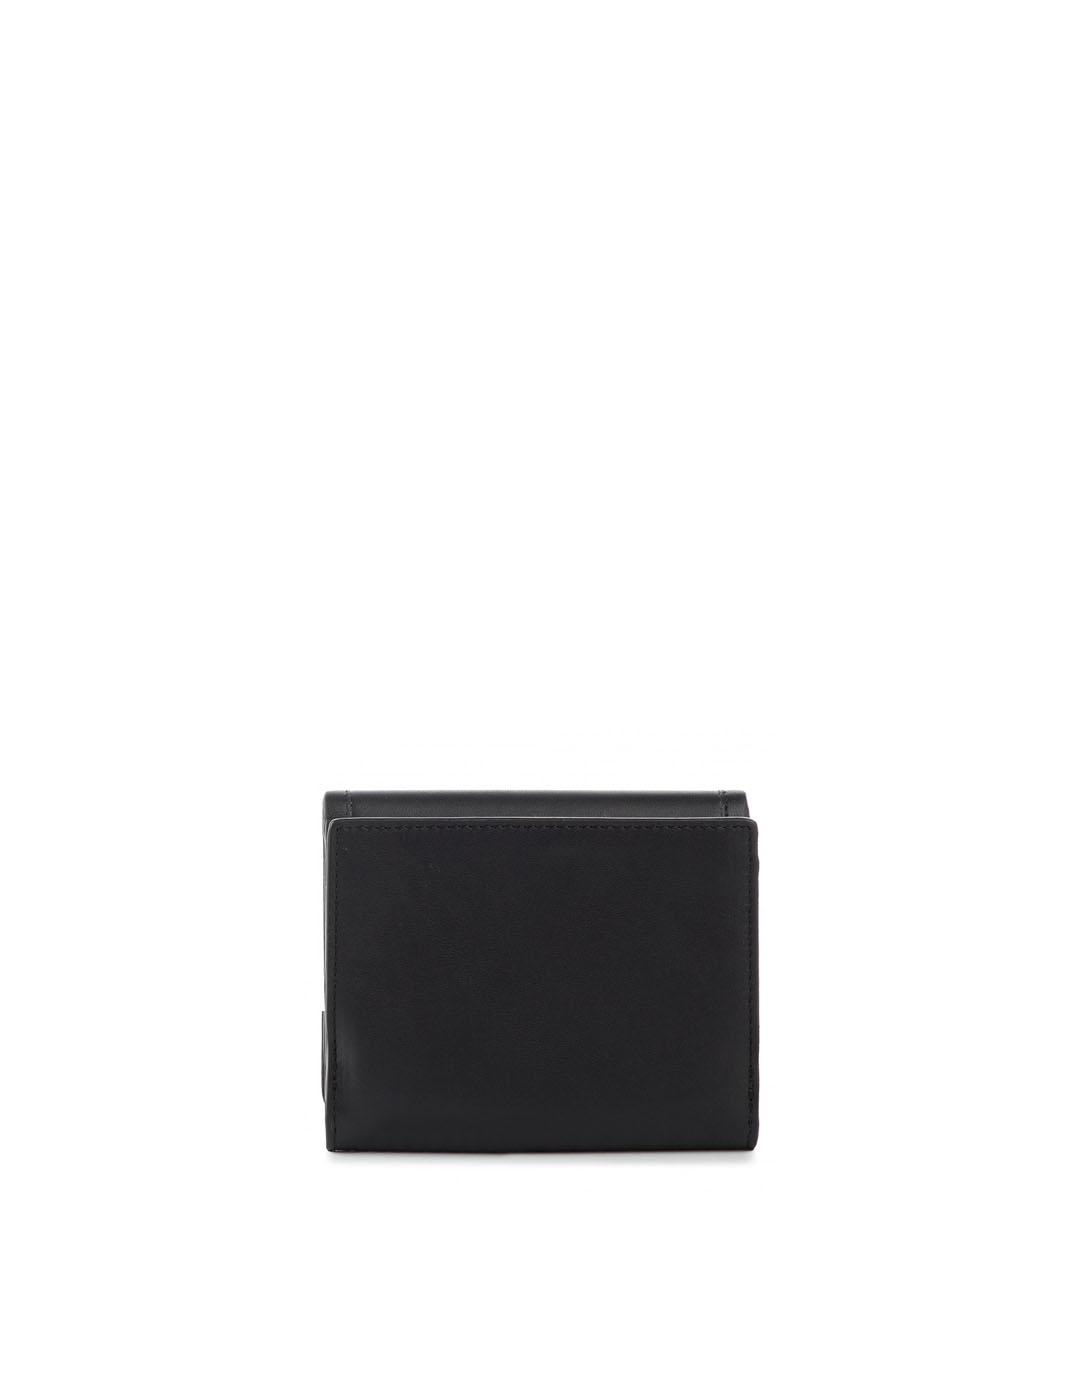 Cartera Karl Lagerfeld negra Medium Wallet K/Athleisure